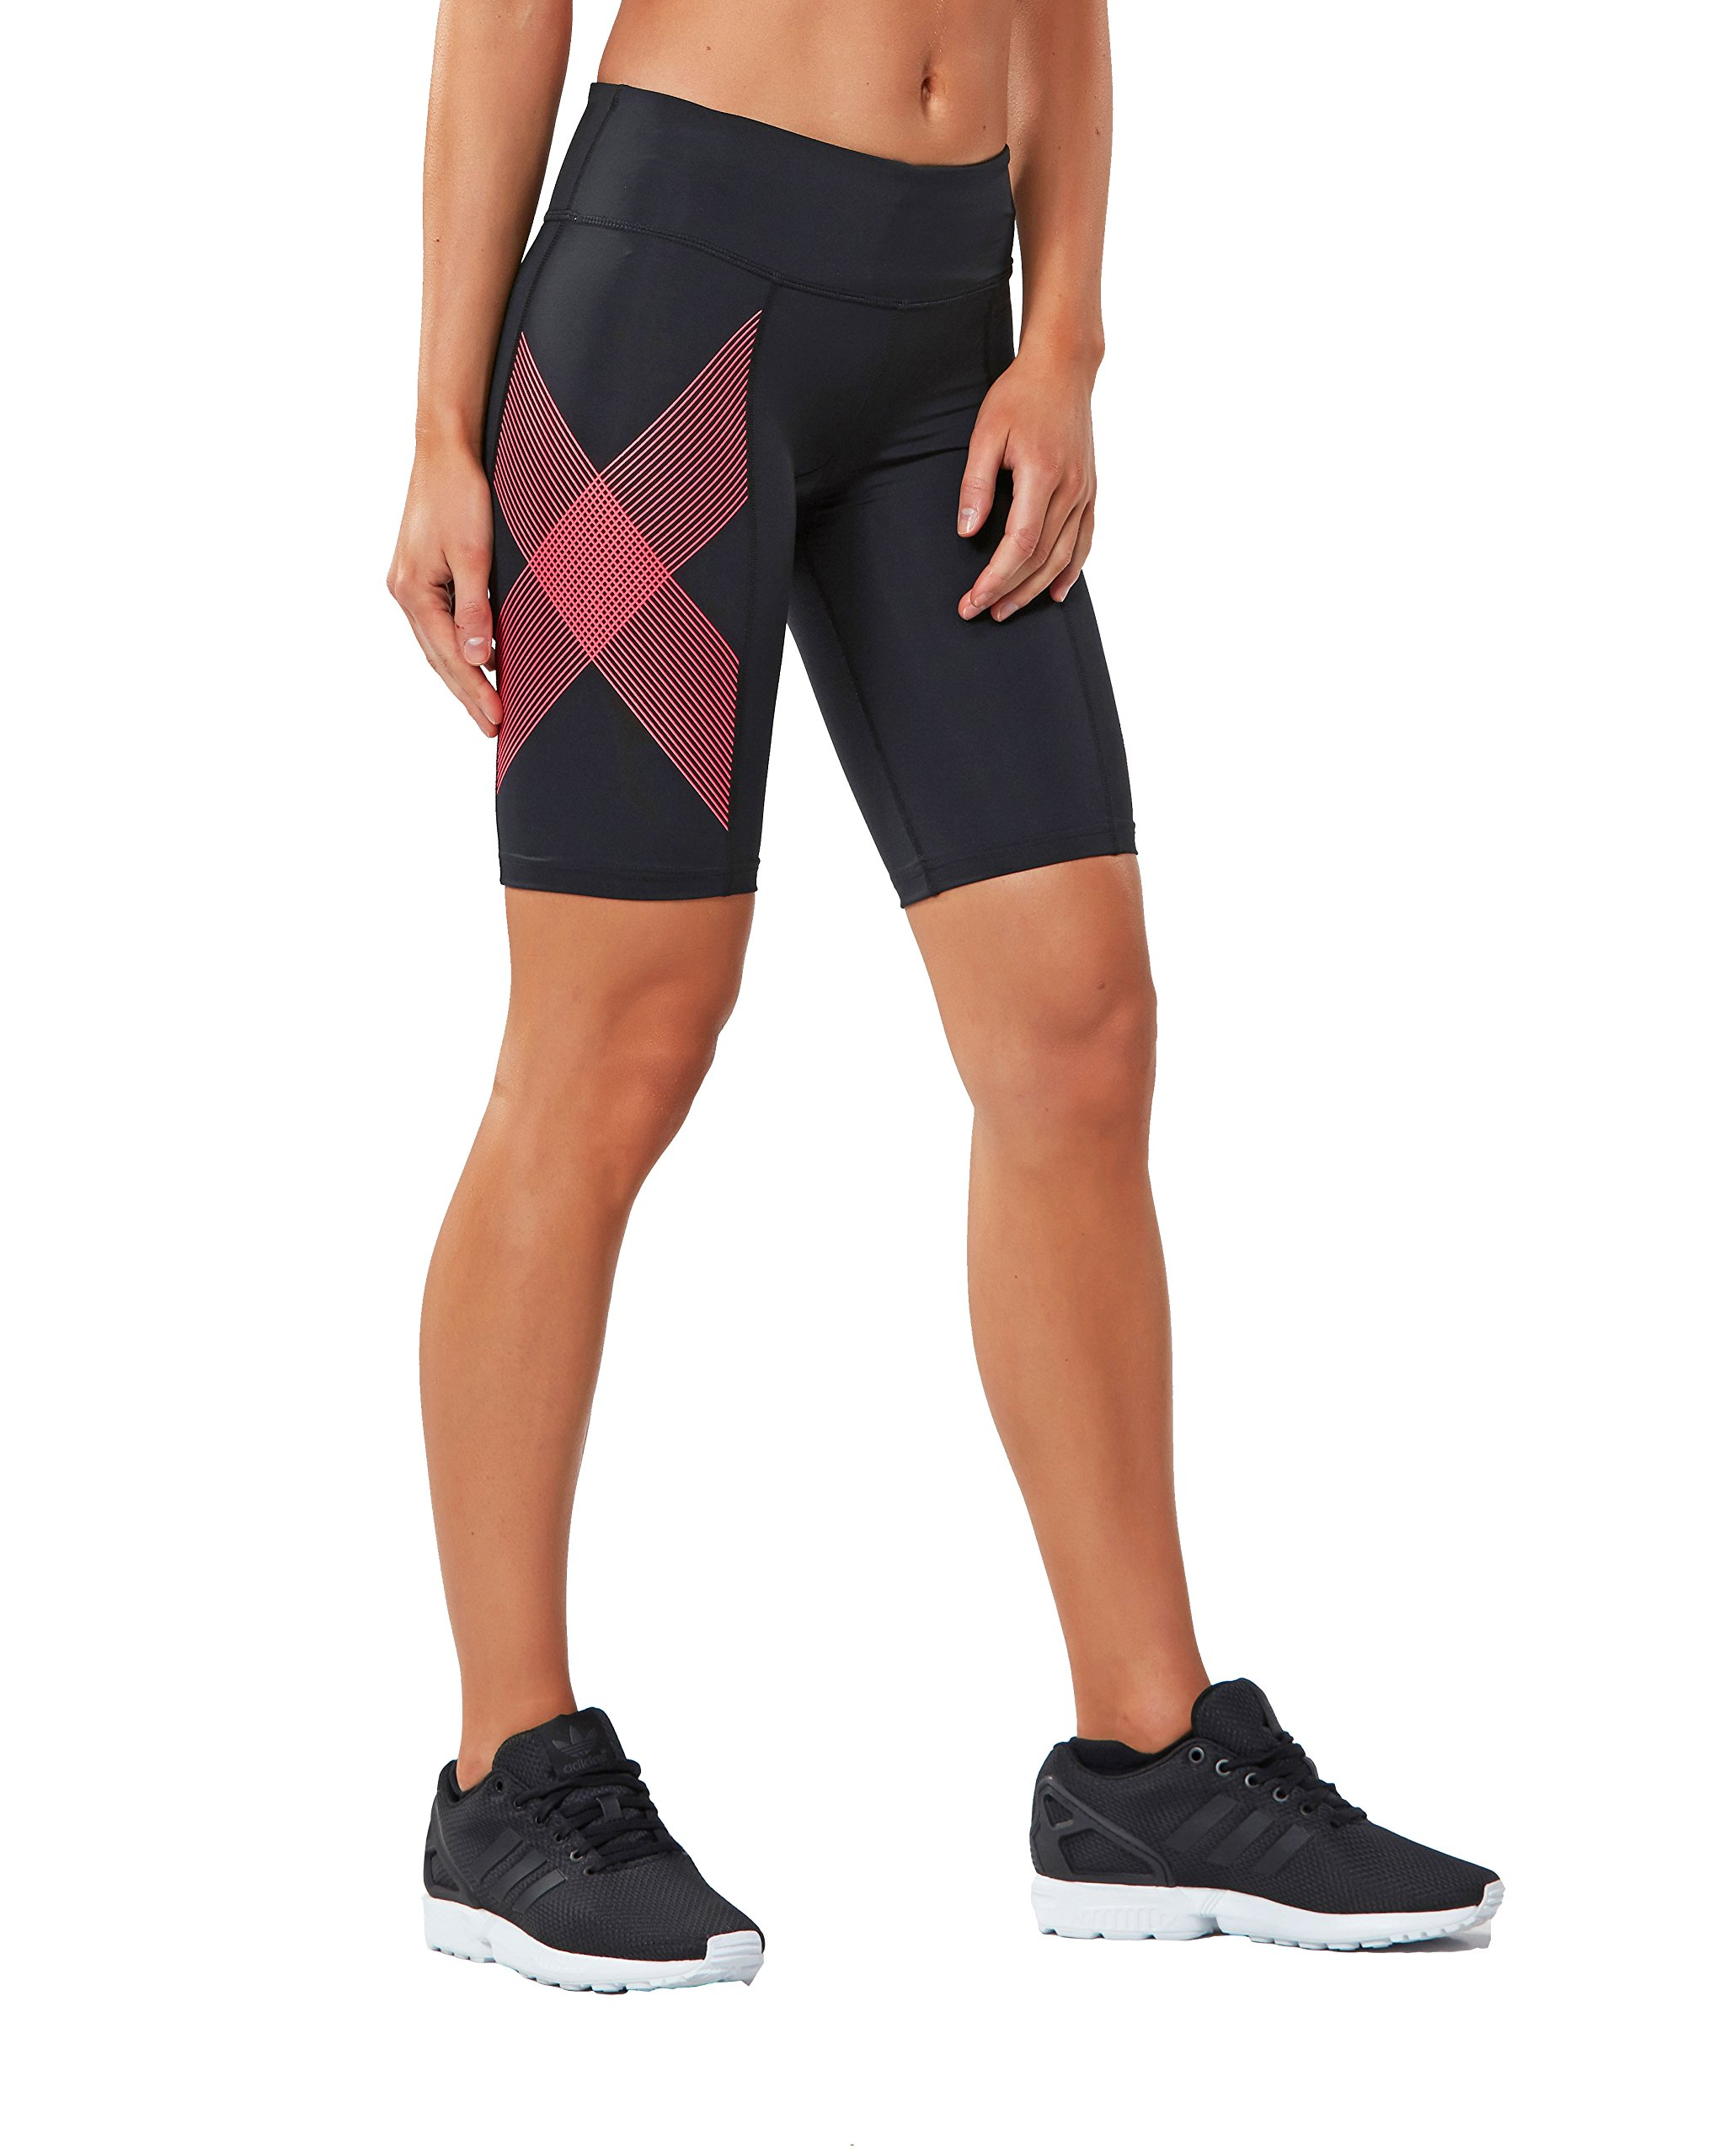 2XU Women's Mid-Rise Compression Shorts, Black/Striped Pink Glow, X-Small by 2XU (Image #1)